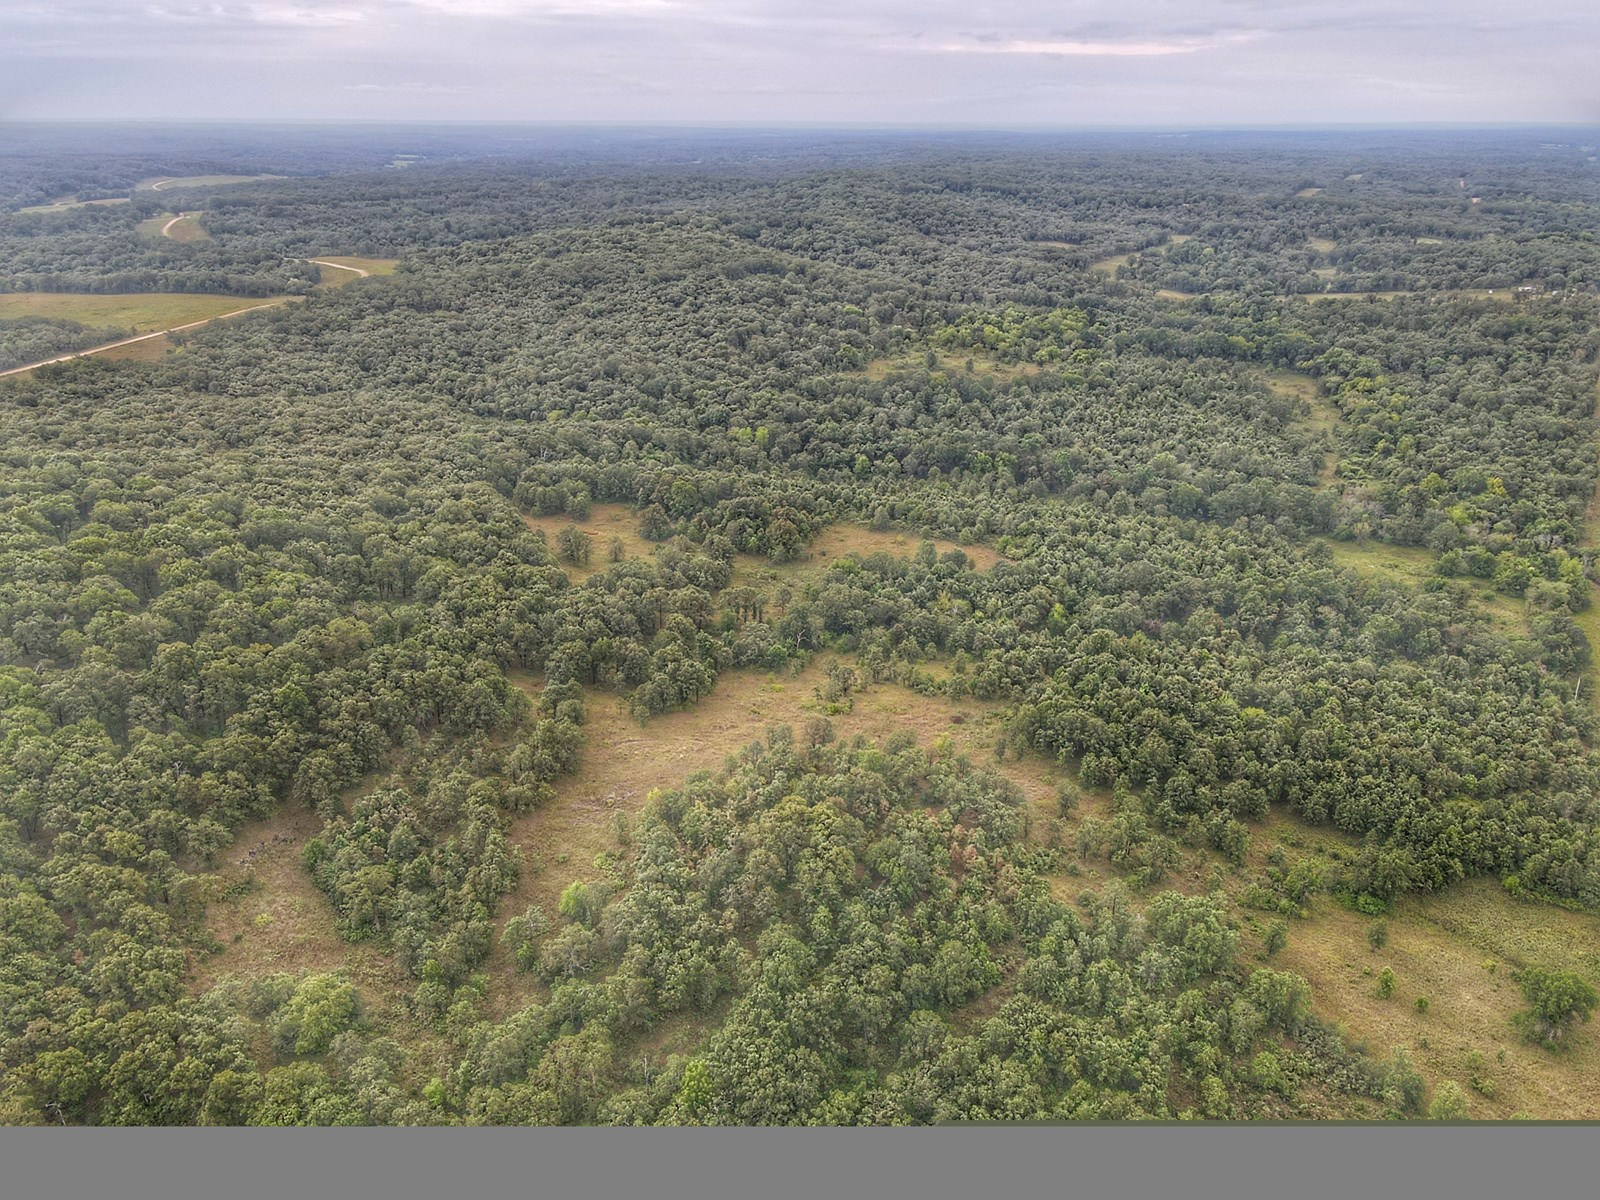 Land for Sale in Benton County, Missouri